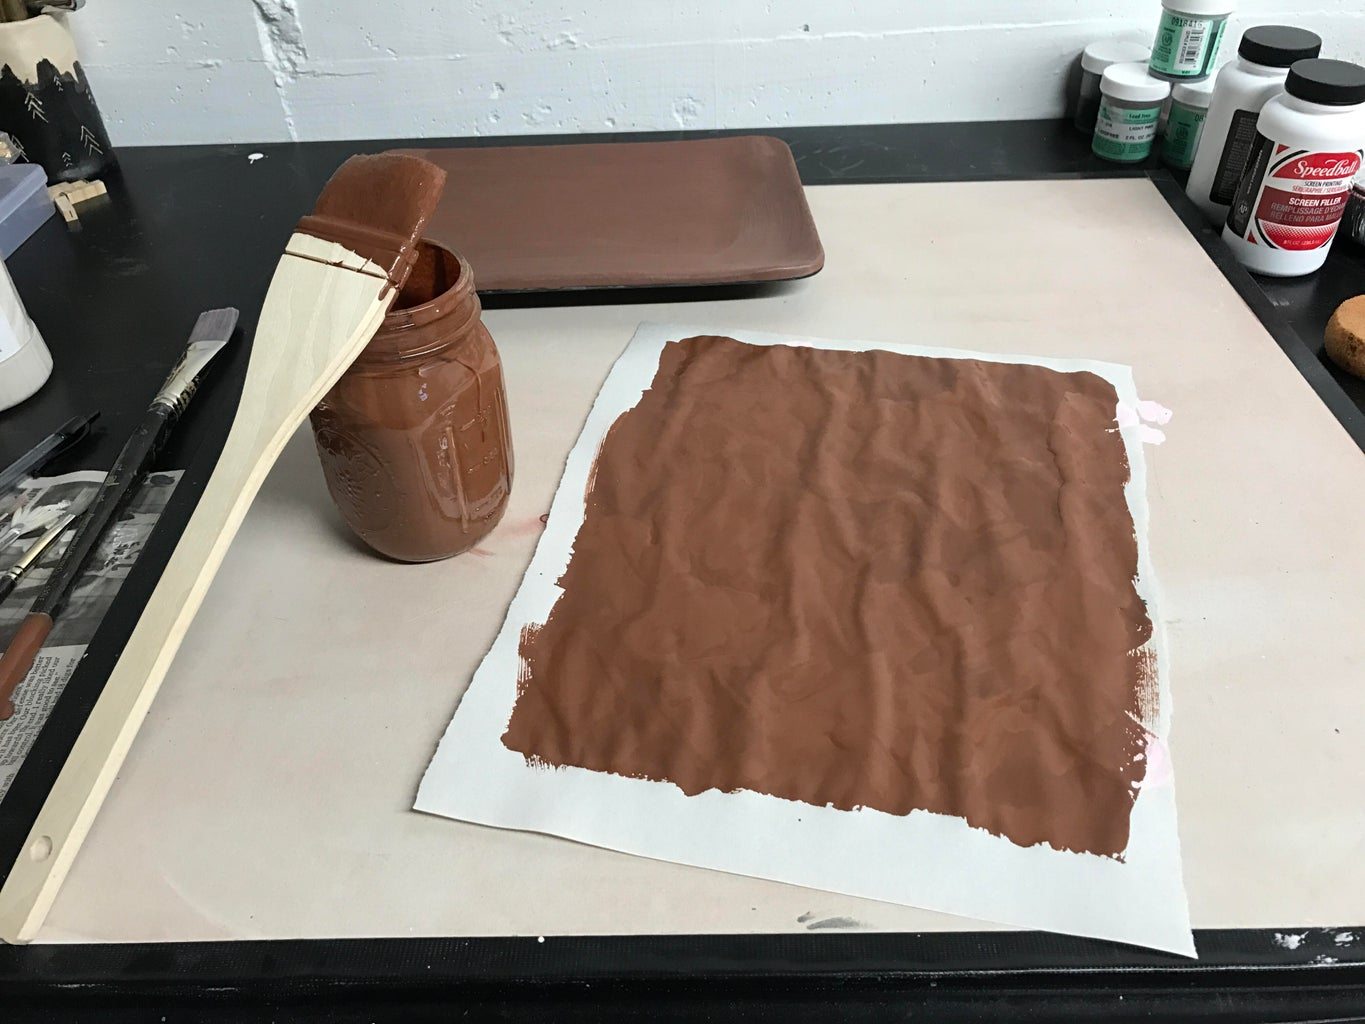 Transfer Your Design to Your Clay Form